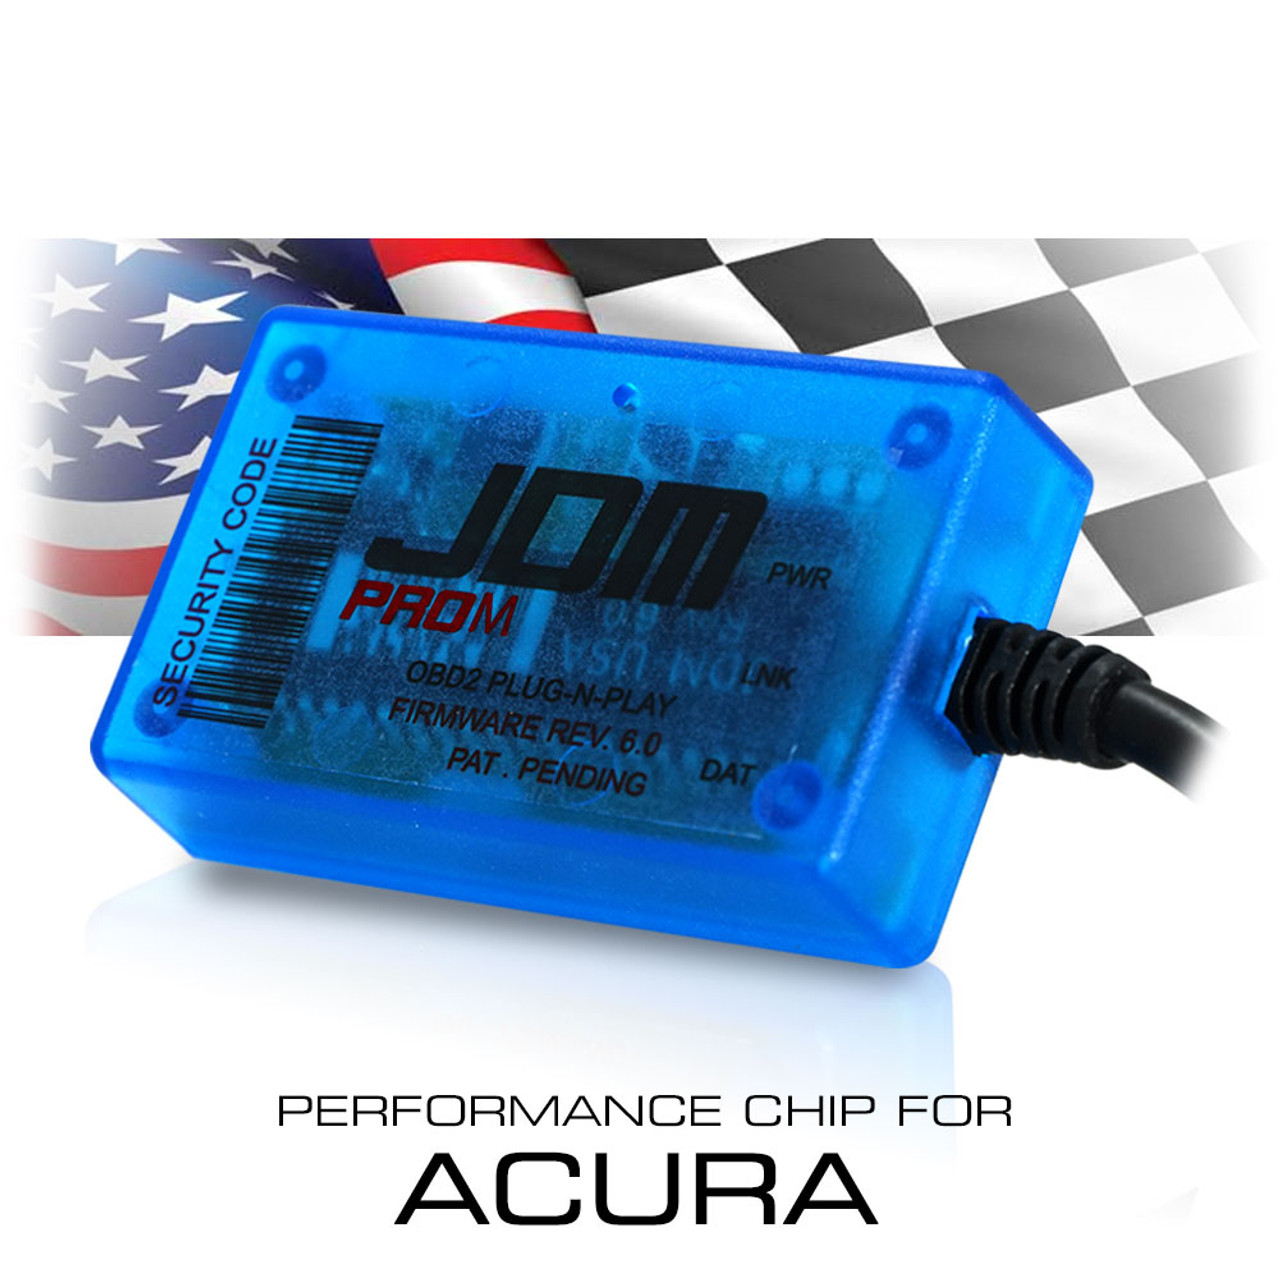 Stage 3 Performance Chip OBDII Module For Acura